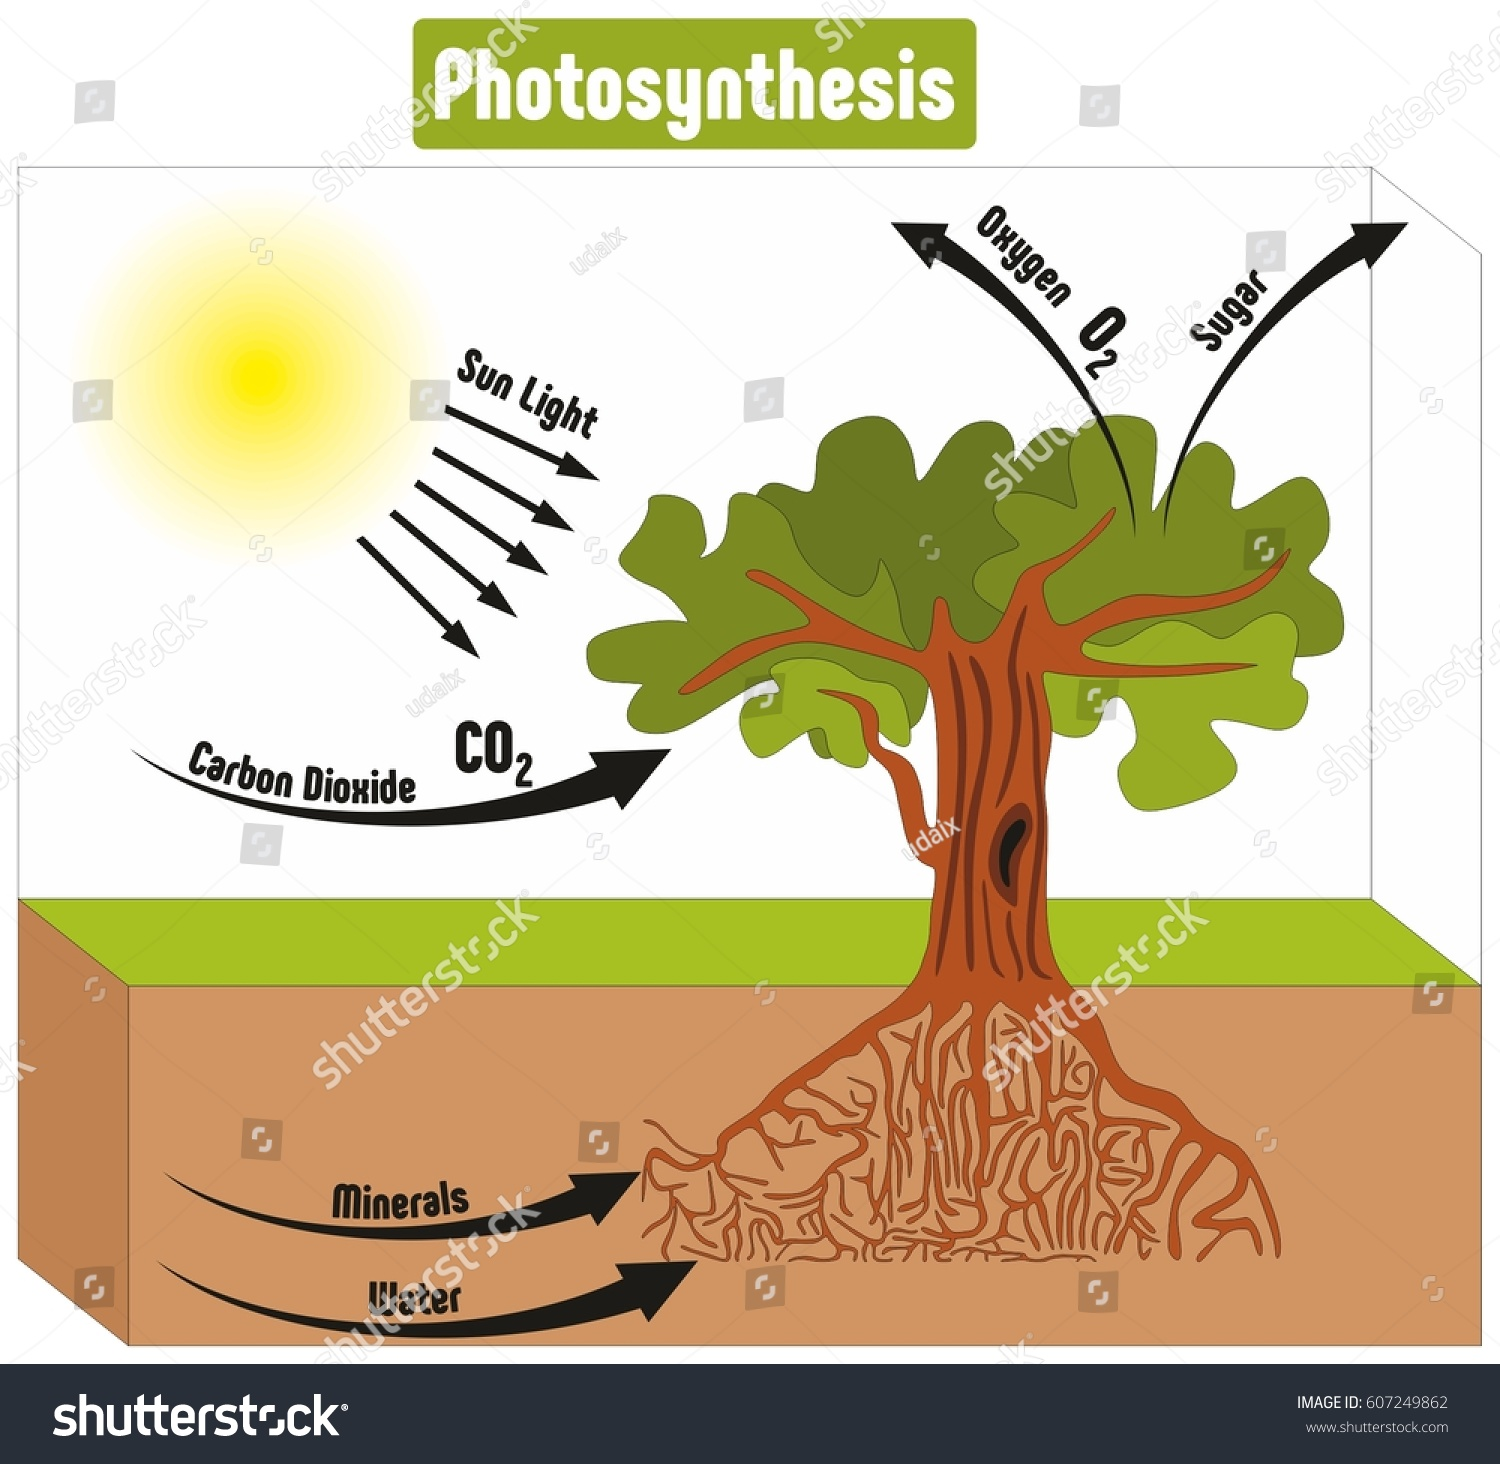 Plant Energy Transformations-Photosynthesis - GRKR aj. Org The site of photosynthesis in a plant is